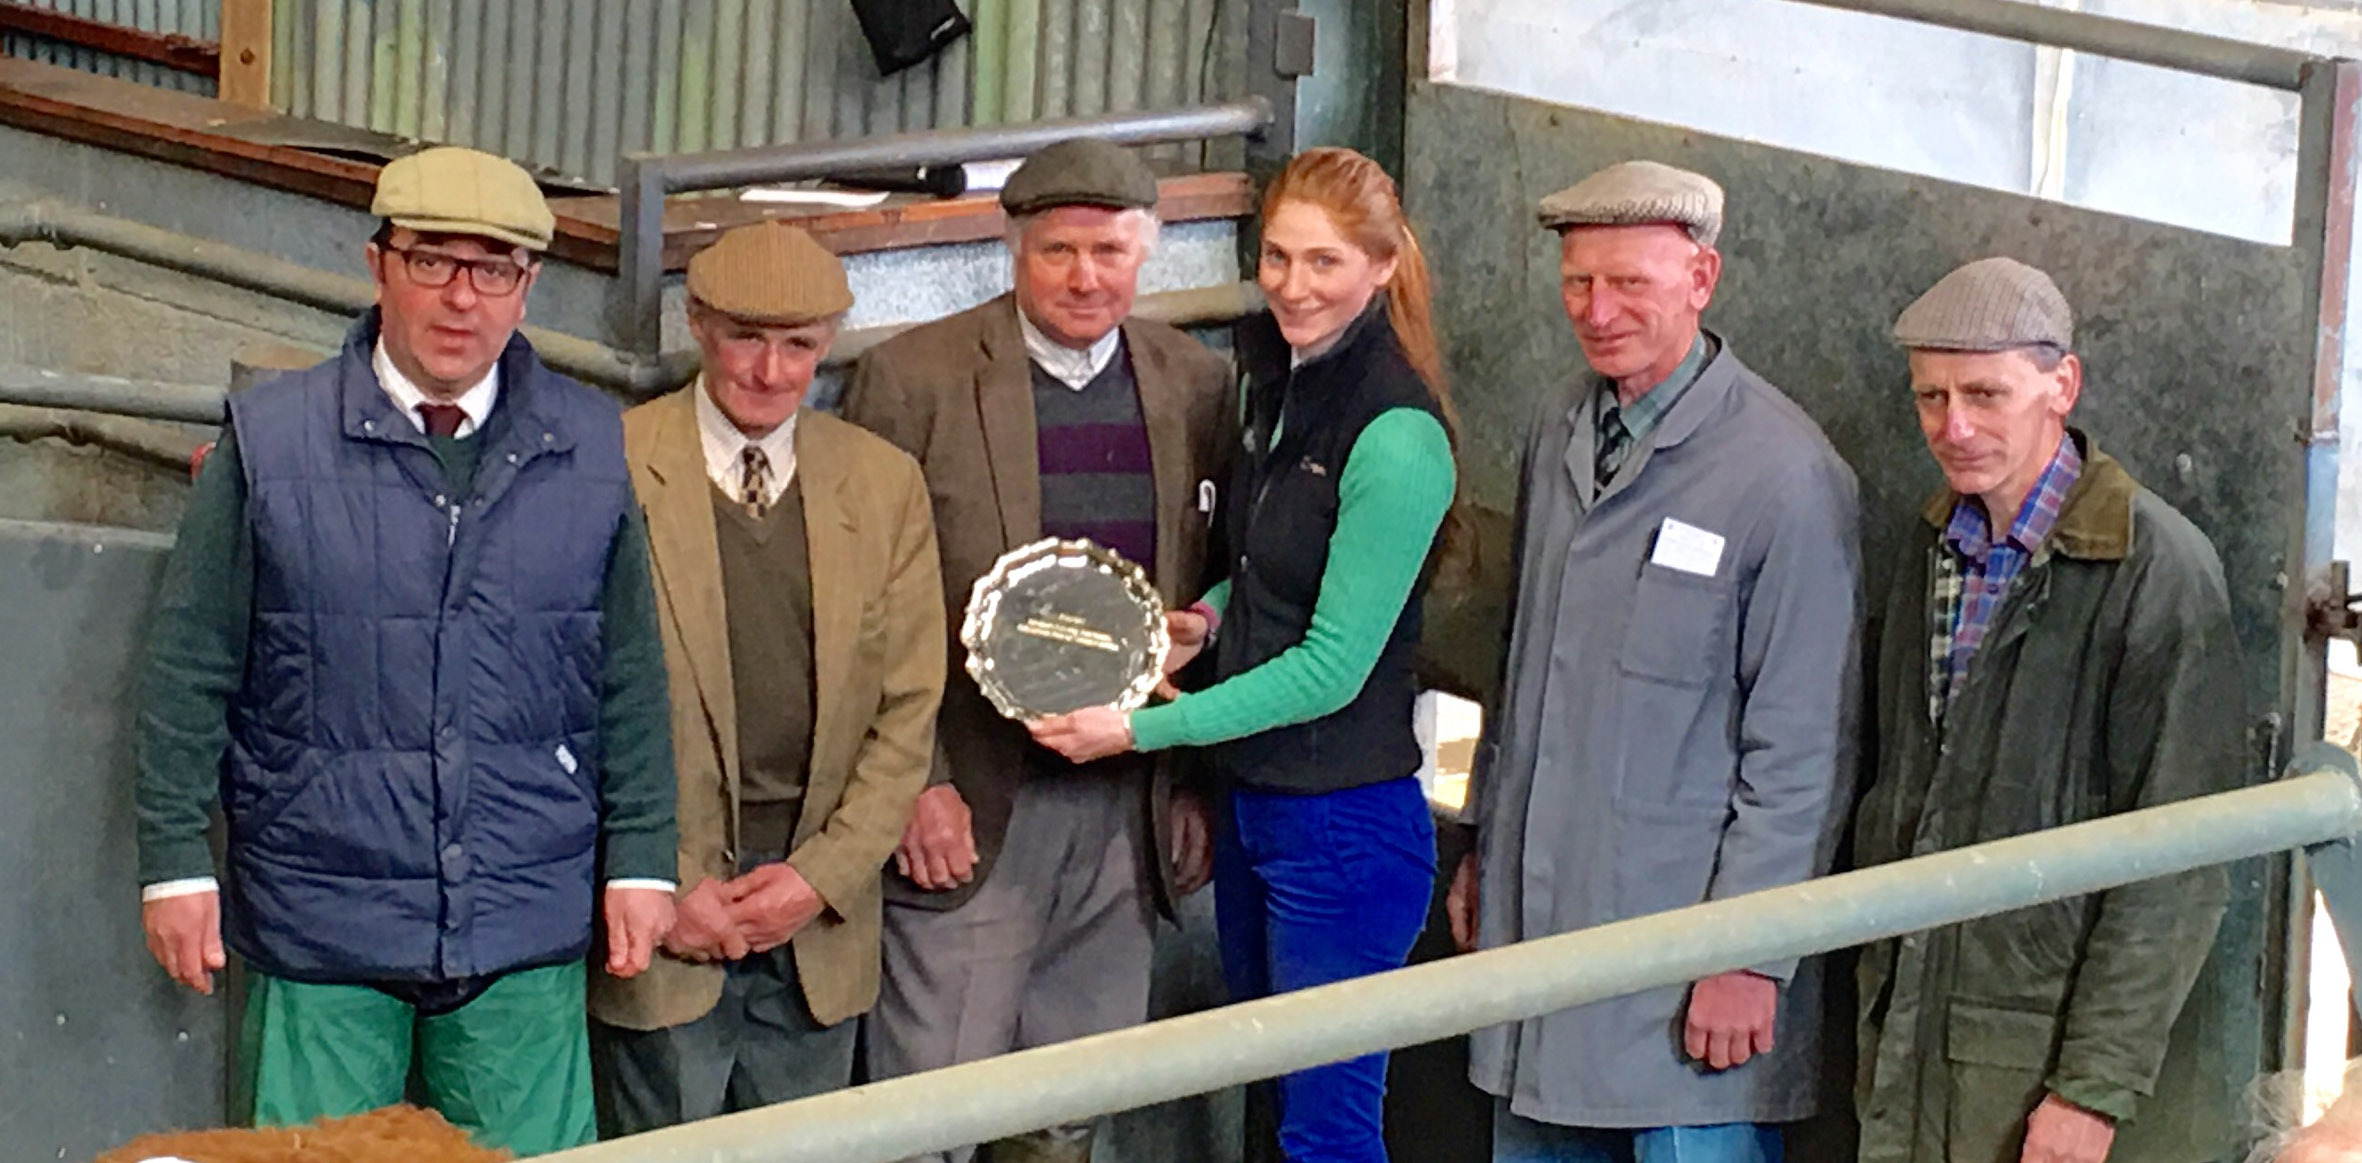 Kimberley Dudley of Allflex presents the salver to Phil and Mike Wood watched by Halls' director James Evans (left) and judges Grahame and Clive Stubbs.